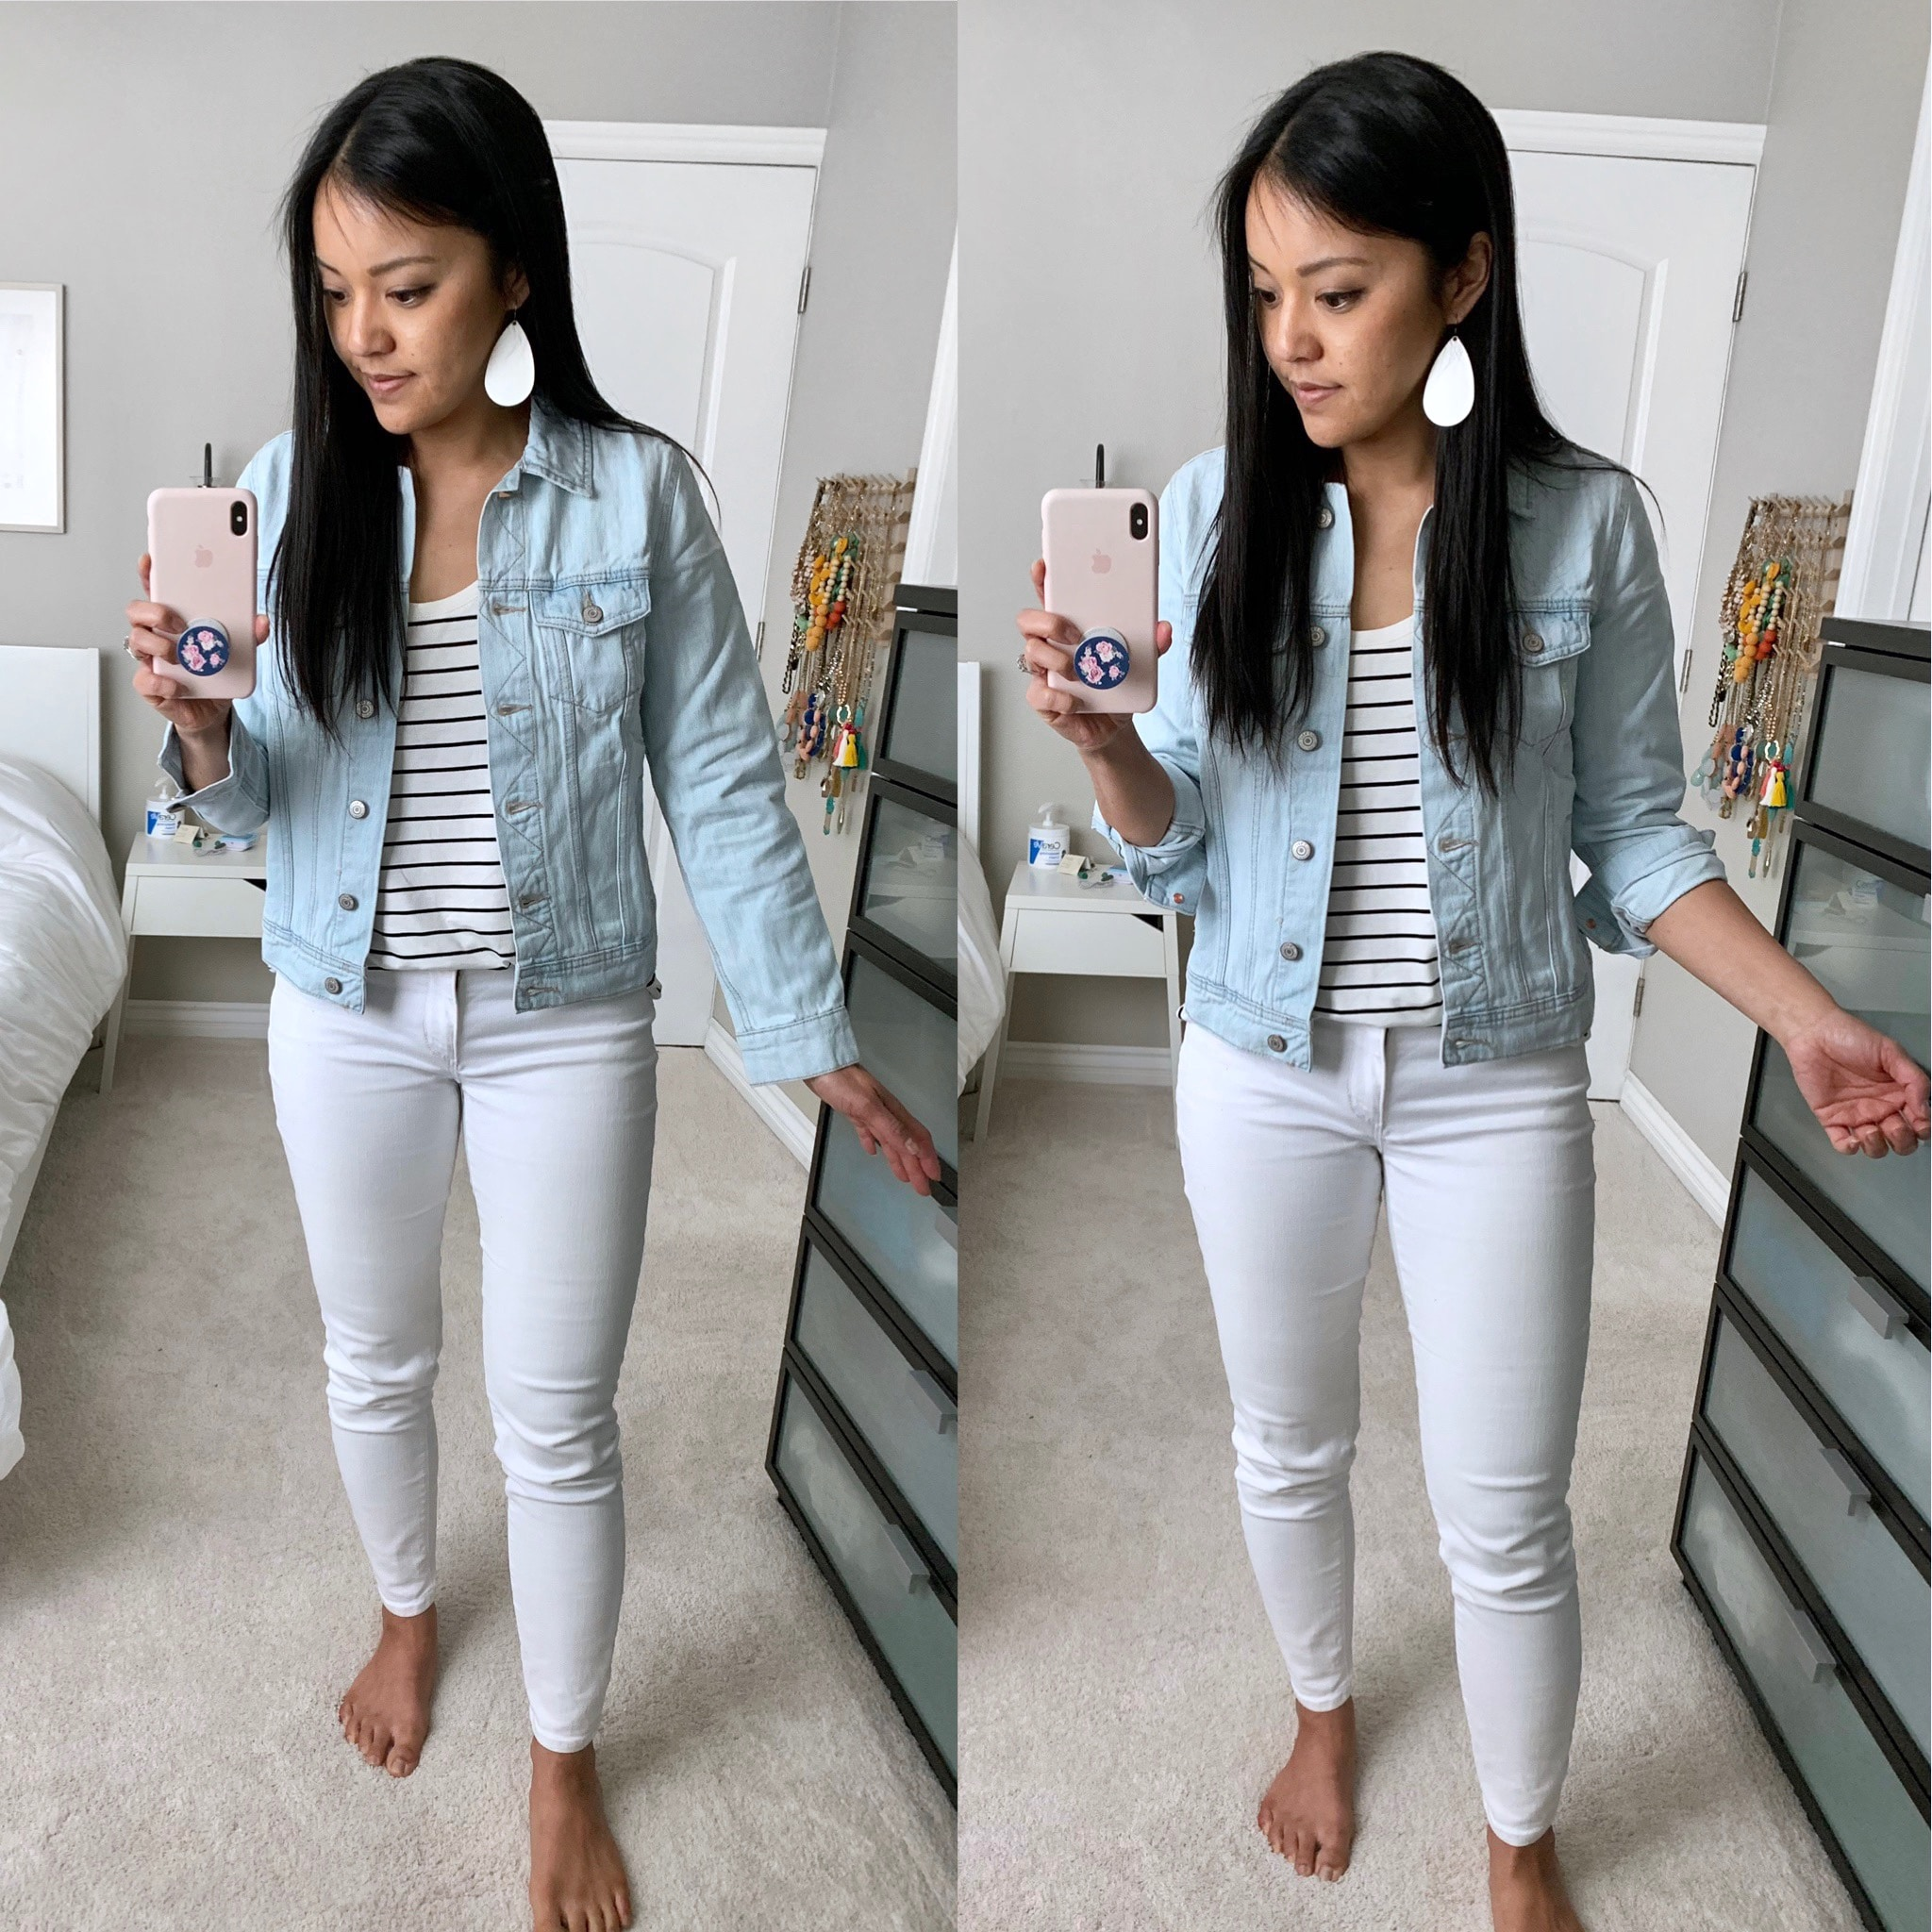 denim jacket + white jeans + striped tee